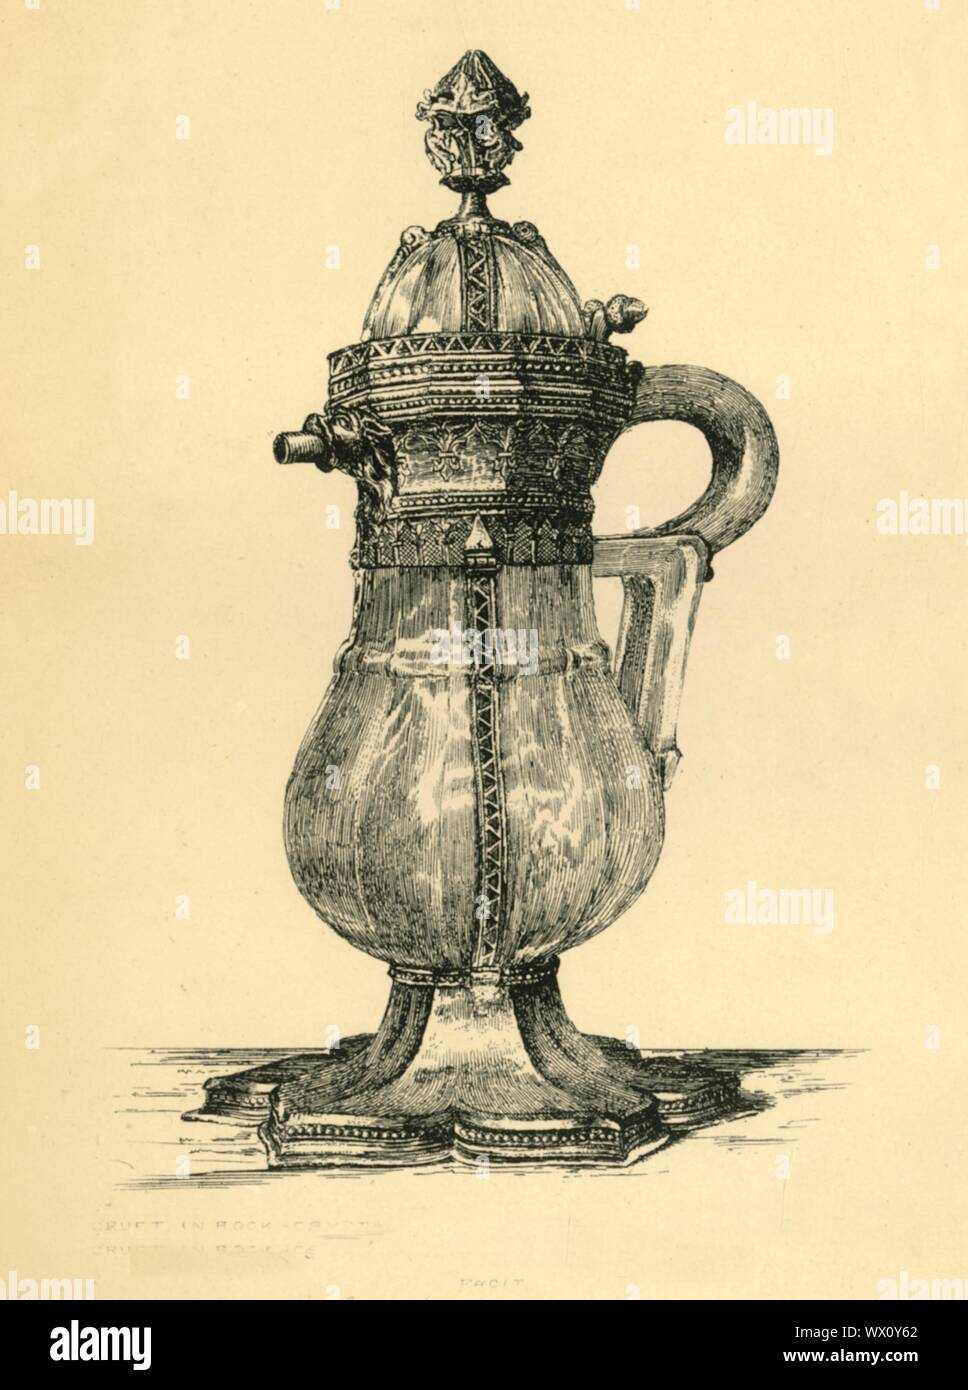 """Crystal cruet, 14th century, (1881). Etching of a small ewer made 1340-1350 in Paris, of rock crystal, with gilt-silver and enamel. Rock crystal was a material favoured for vessels because of its transparency, and the belief that it would reveal the presence of poison. From """"The South Kensington Museum"""", a book of engraved illustrations, with descriptions, of the works of art in the collection of the Victoria & Albert Museum in London (formerly known as the South Kensington Museum). [Sampson Low, Marston, Searle and Rivington, London, 1881] Stock Photo"""